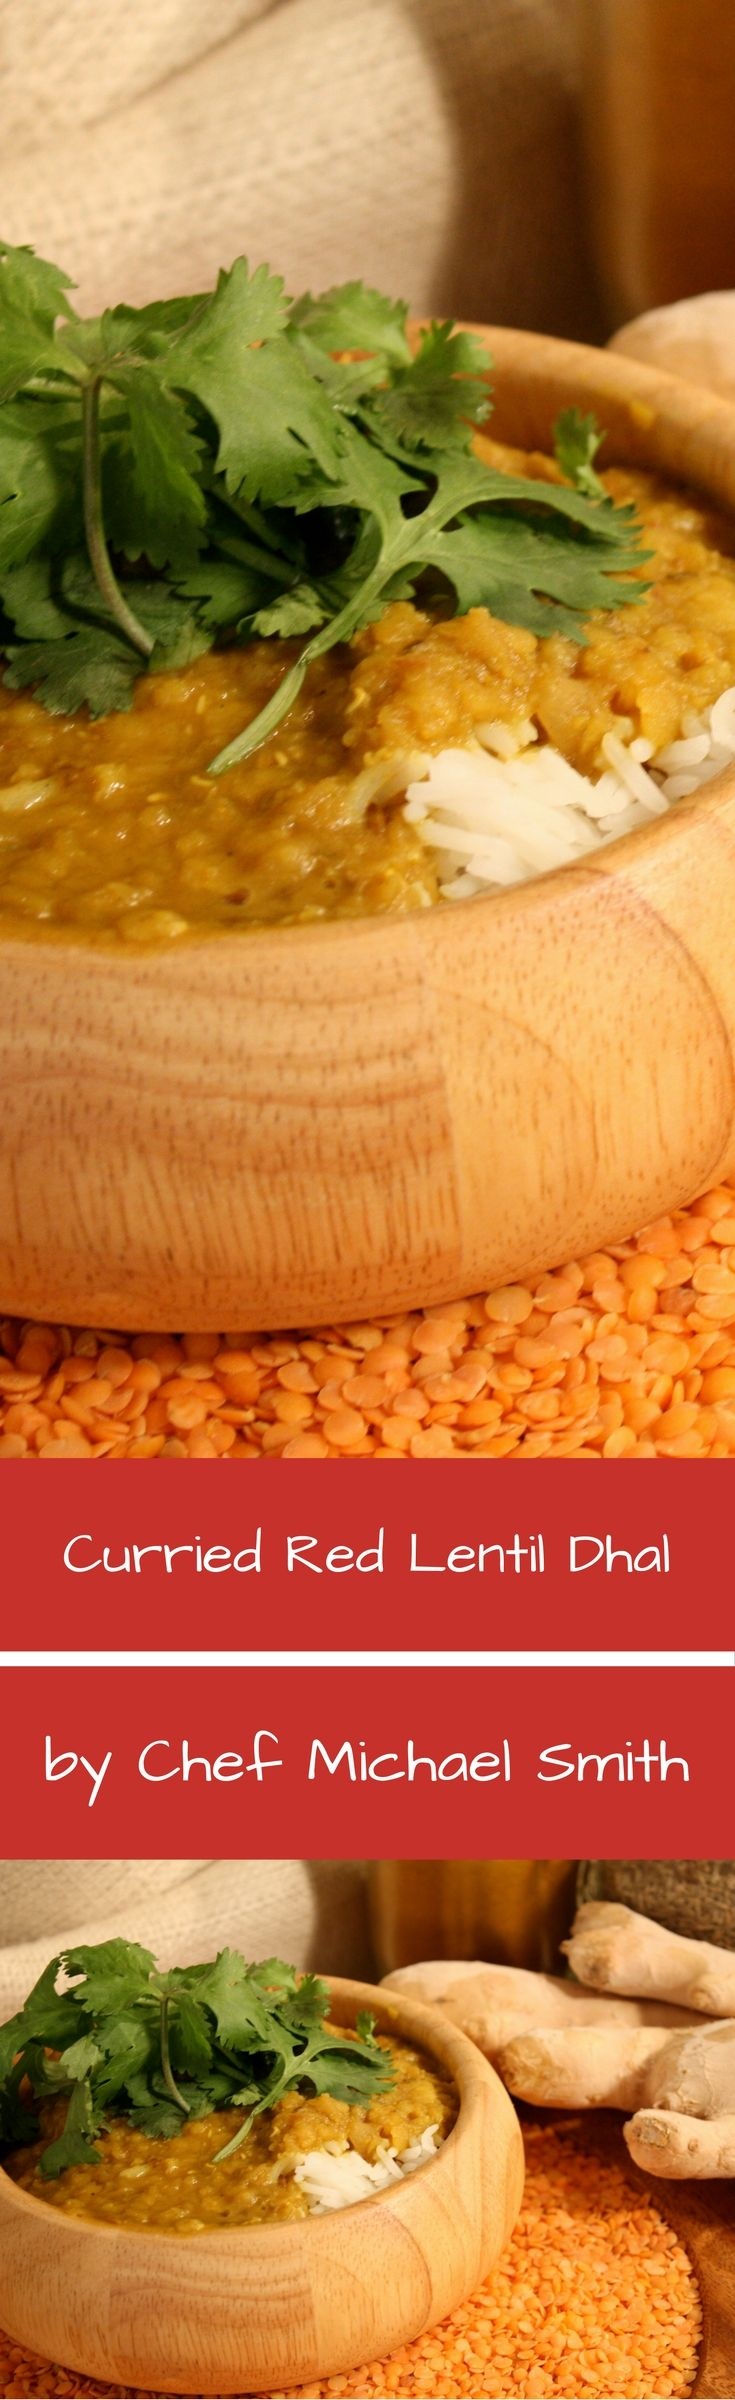 If you like the flavours of Indian curry you'll love dhal, essentially curried lentil puree served over rice. Red lentils are skinless and split so as they simmer they easily dissolve into a puree. Pour the fragrant sauce over rice and you'll see why this is one of the worlds tastiest and most popular lentil dishes!